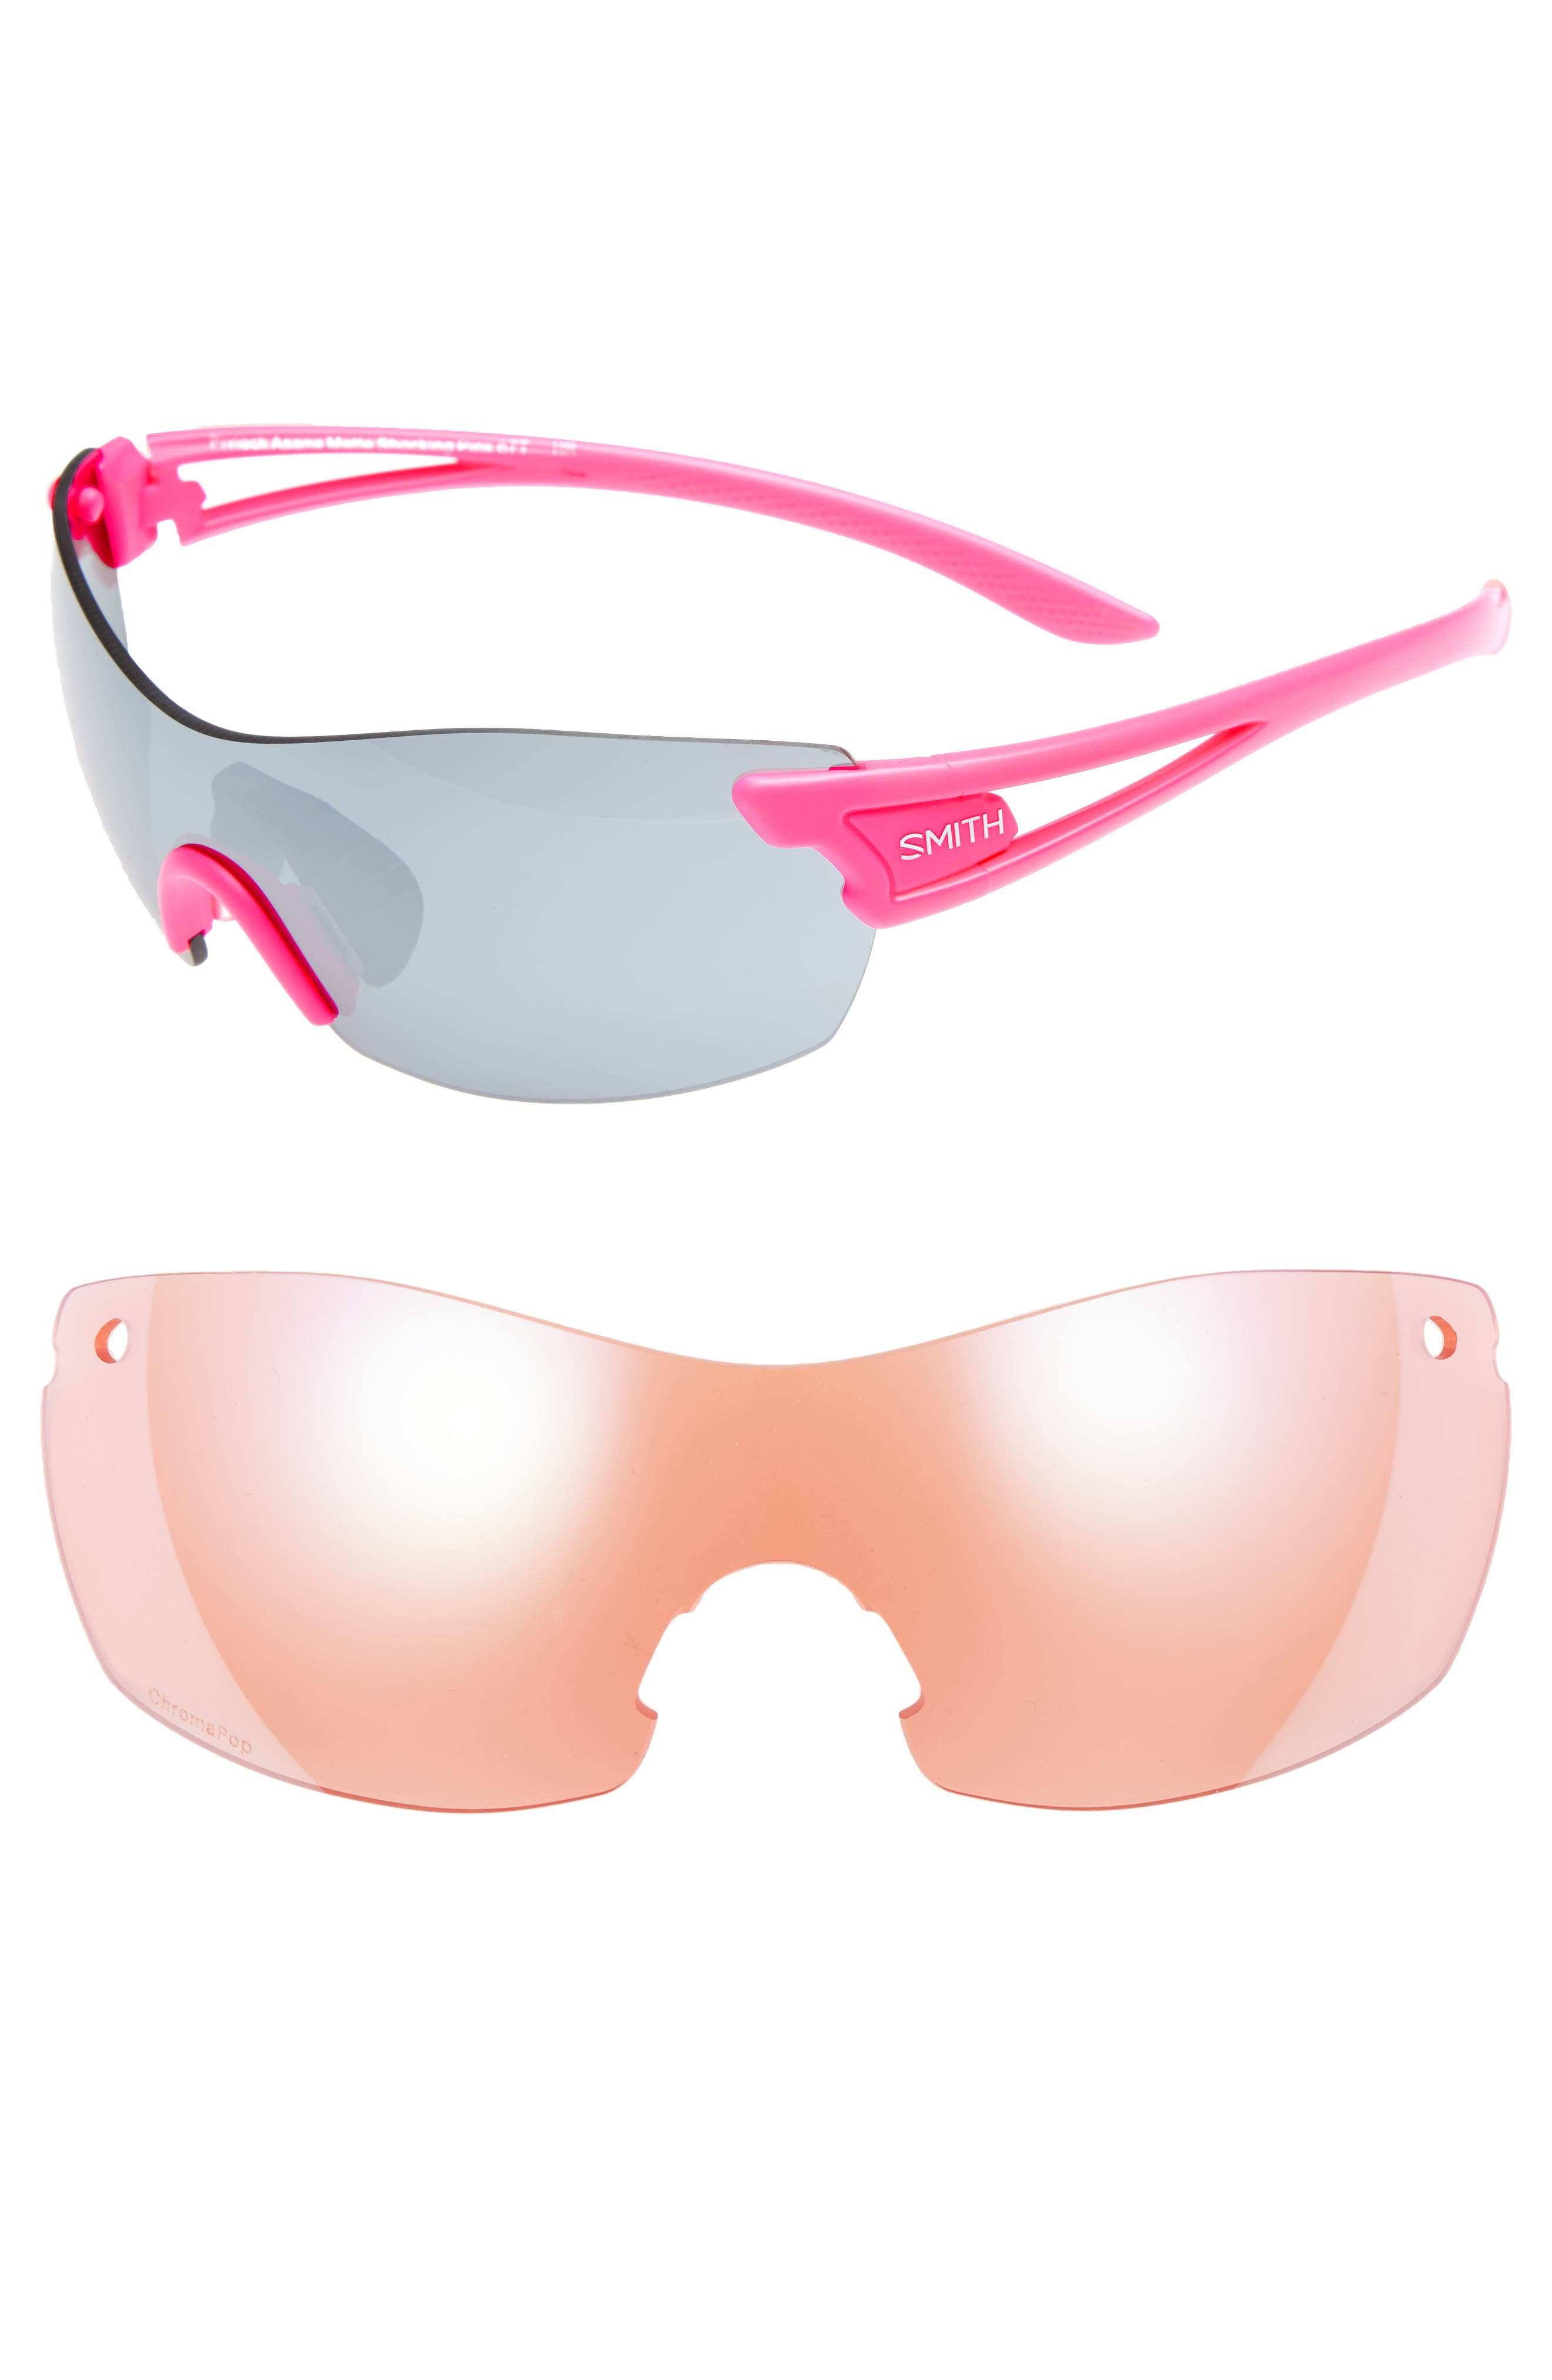 SMITH PivLock<sup>™</sup> Asana 125mm ChromaPop Polarized Sunglasses